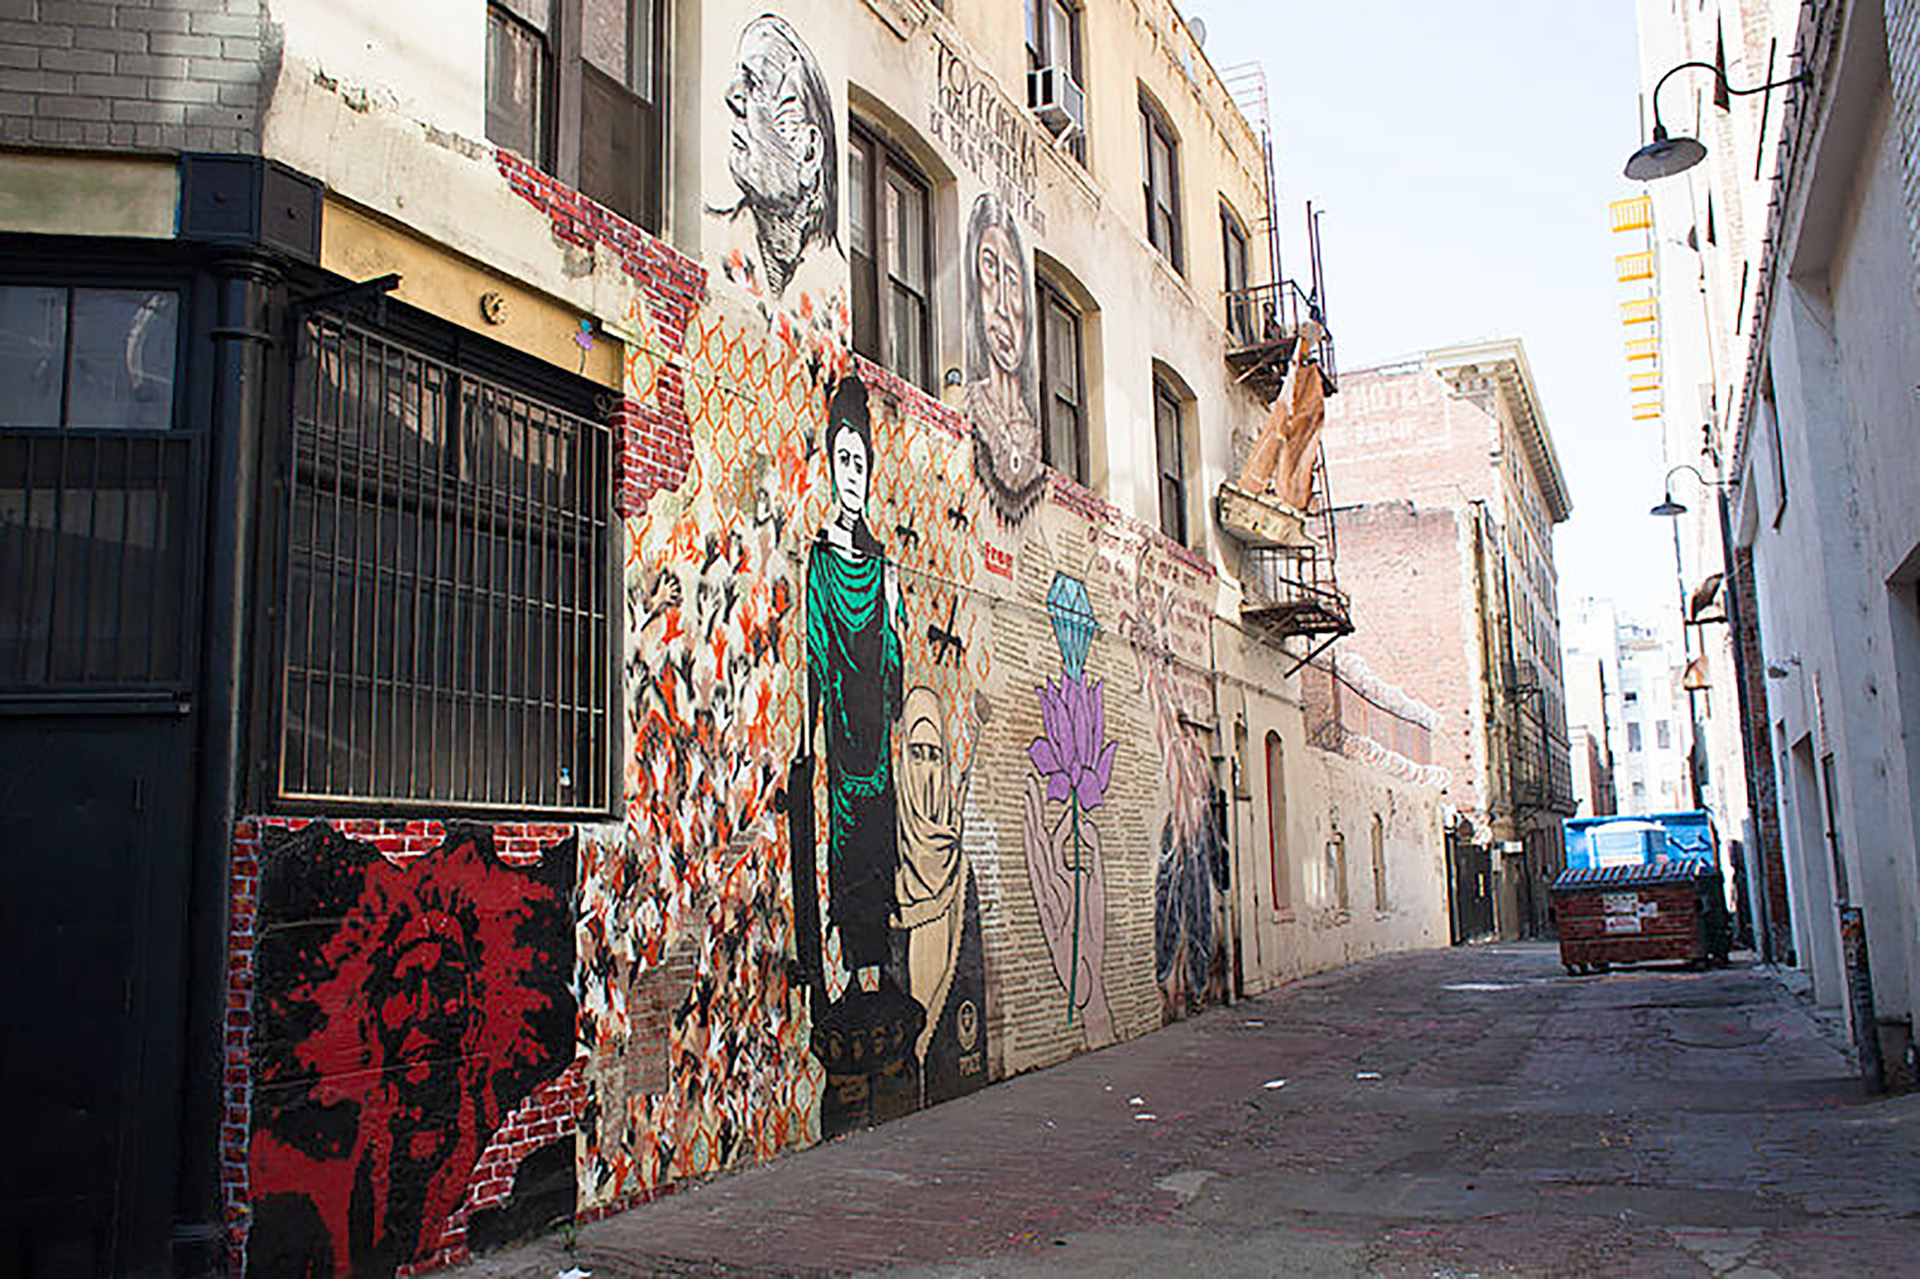 a view of Indian Alley in Downtown Los Angeles with murals and portraits painted on the backs of buildings along the alley